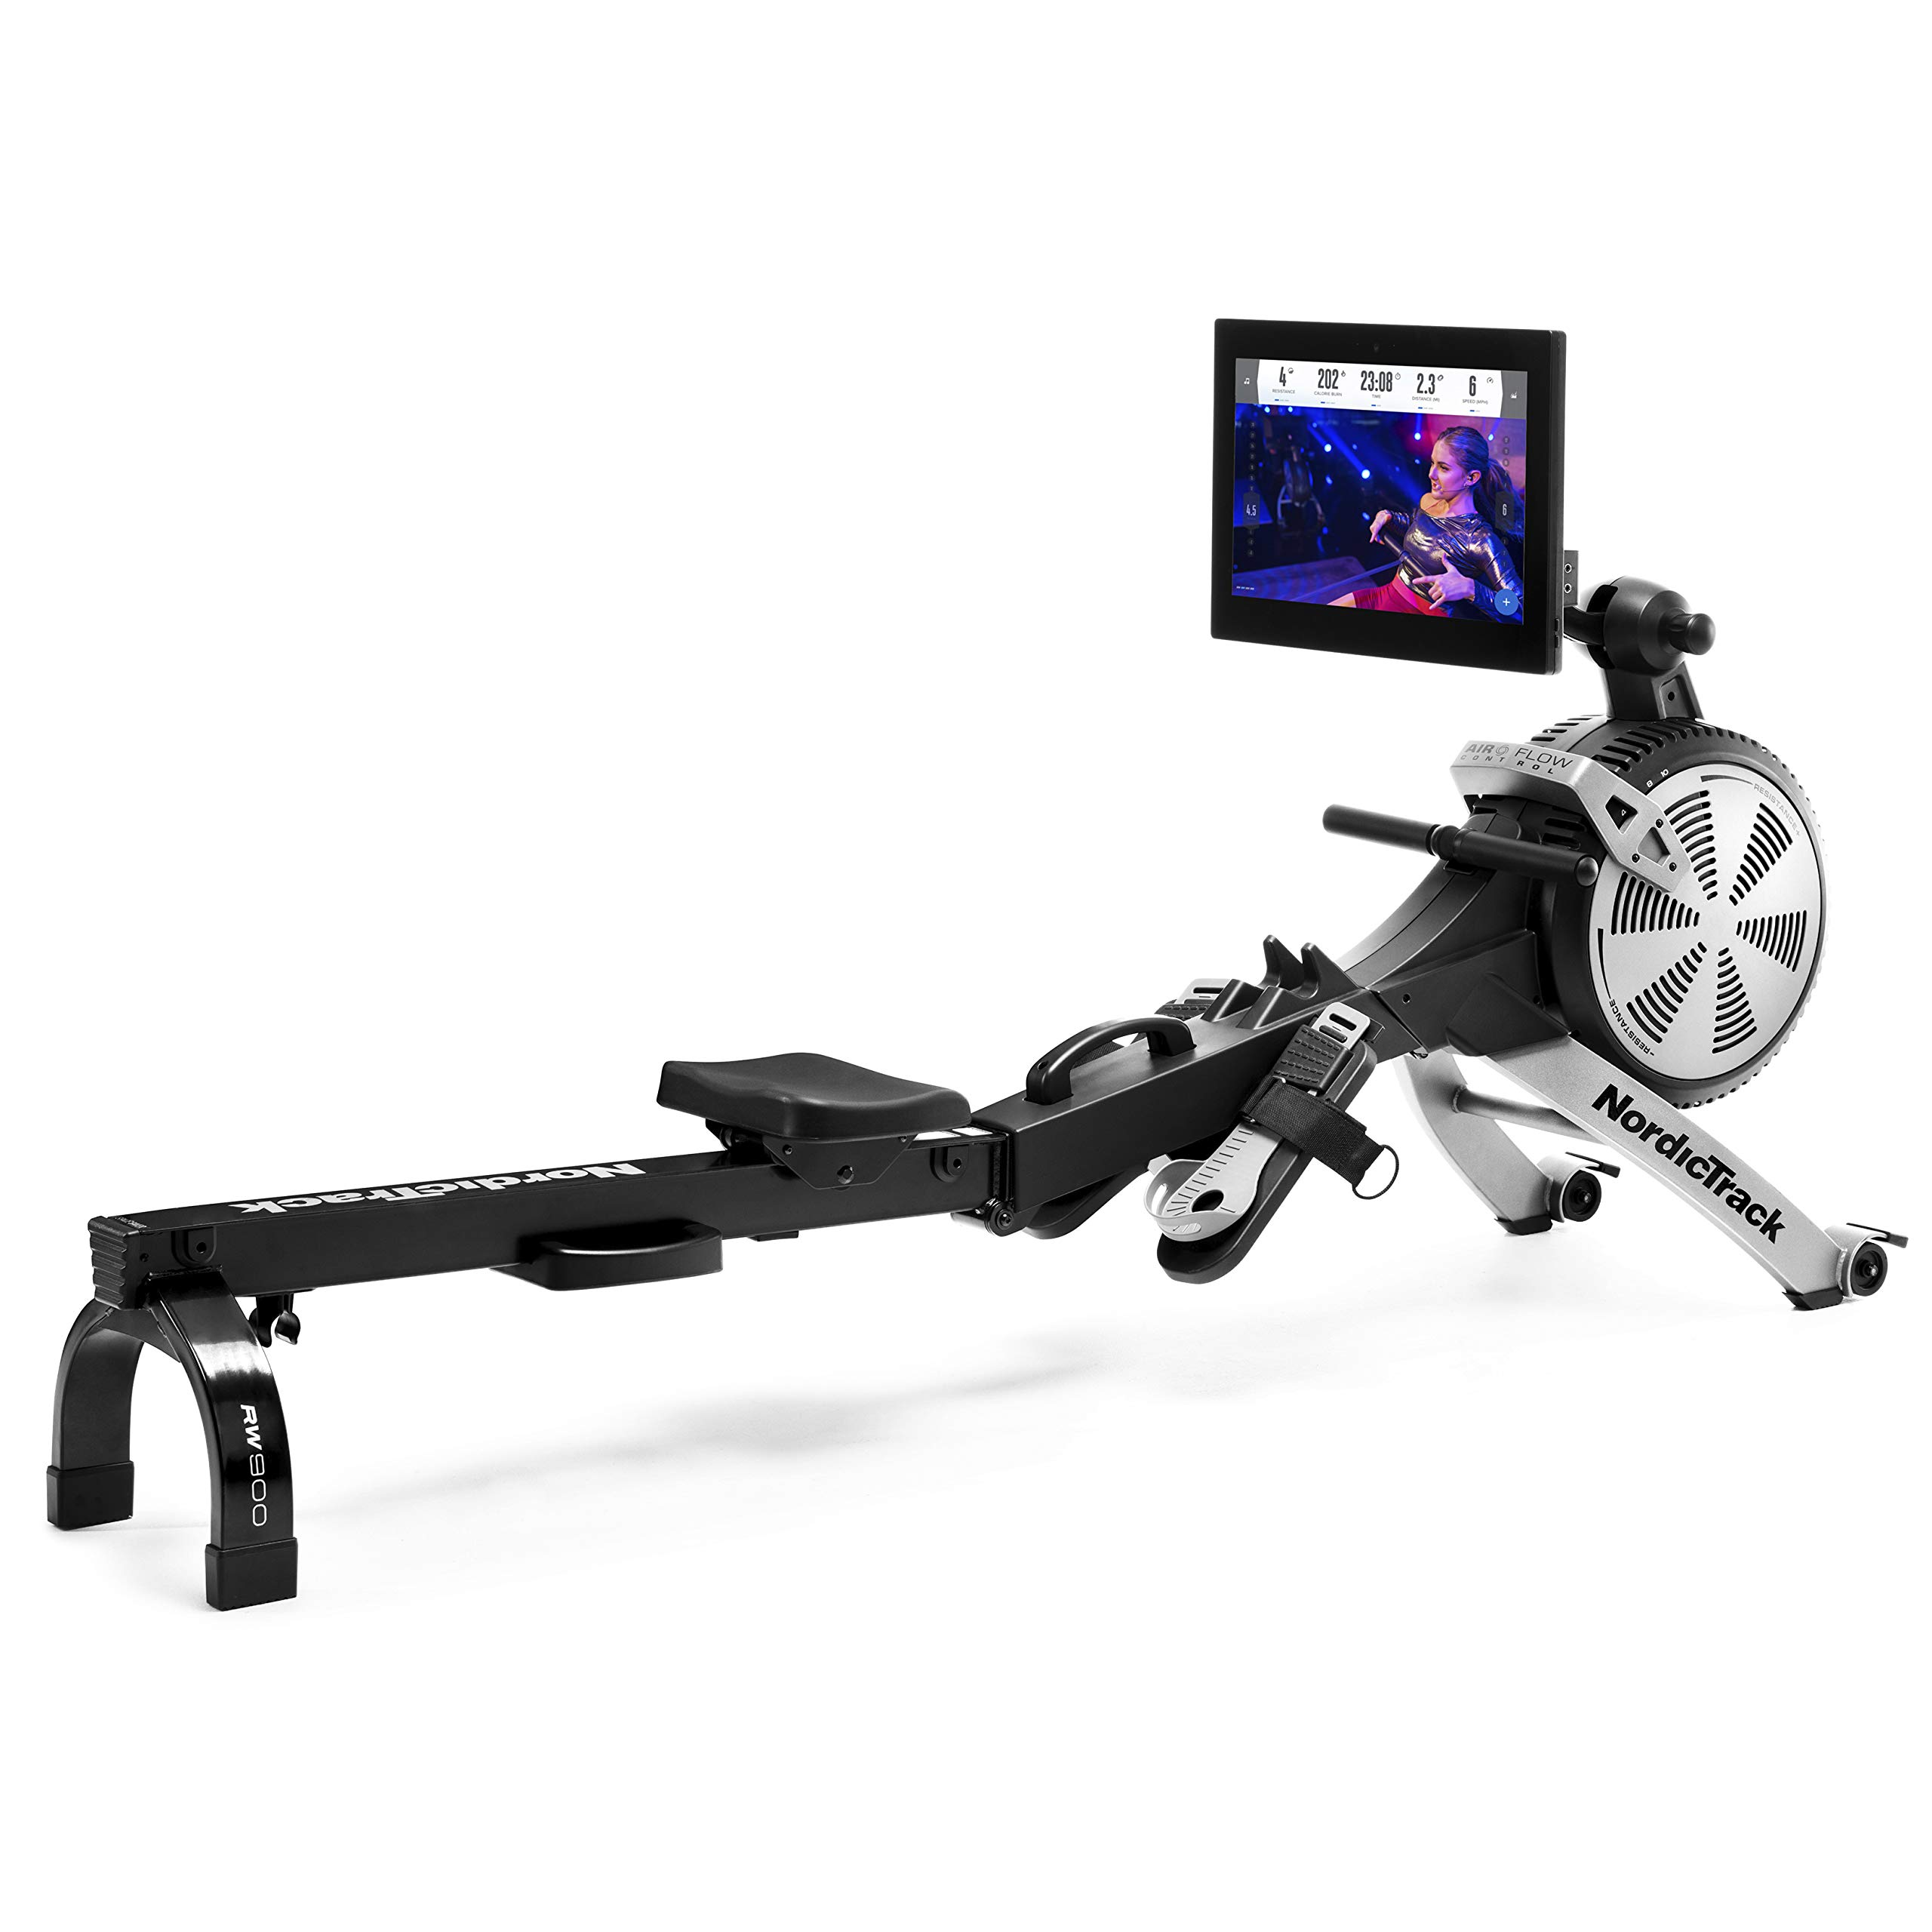 Nordic Track RW900 Rower by NordicTrack